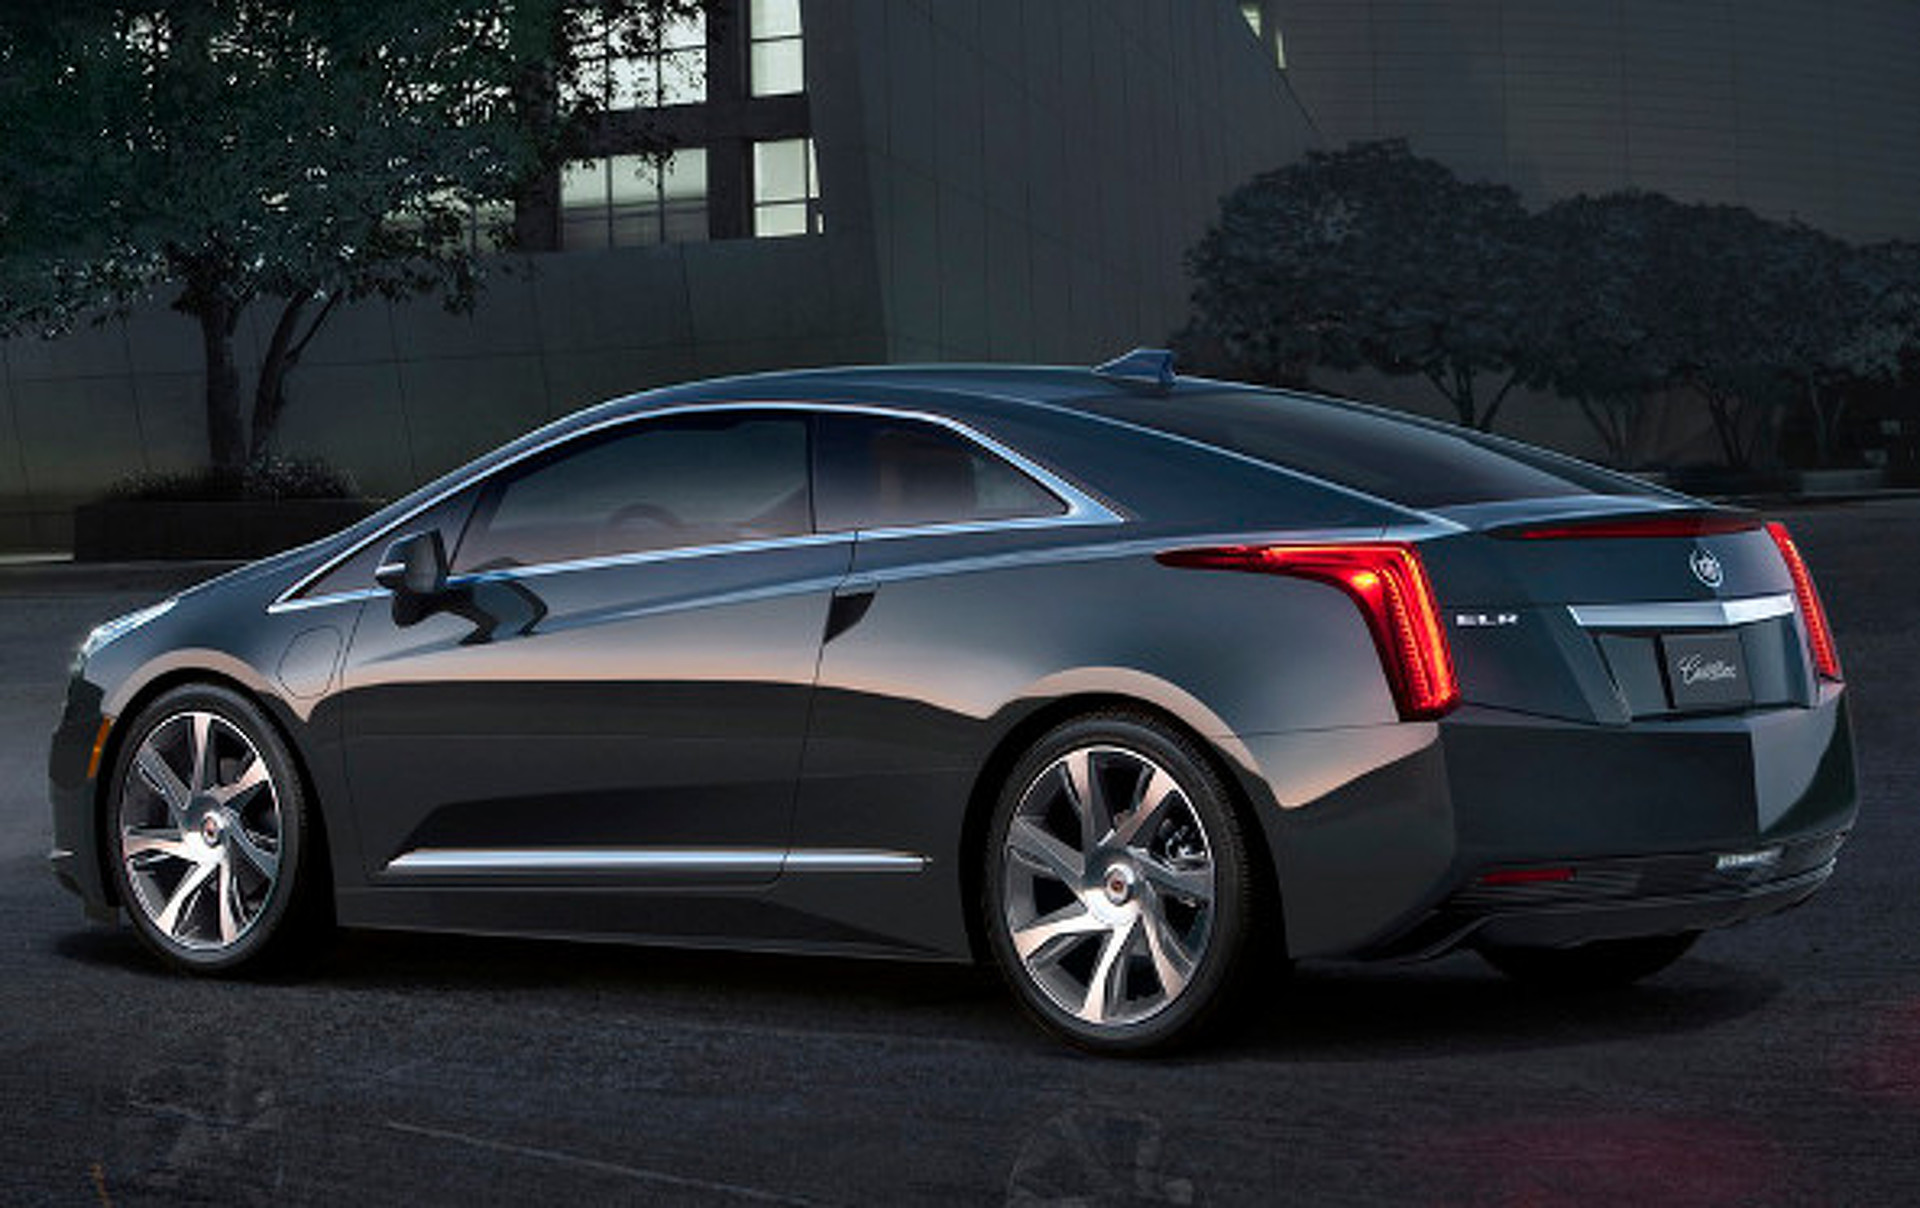 2014 Cadillac ELR Priced $40K More Than Chevy Volt